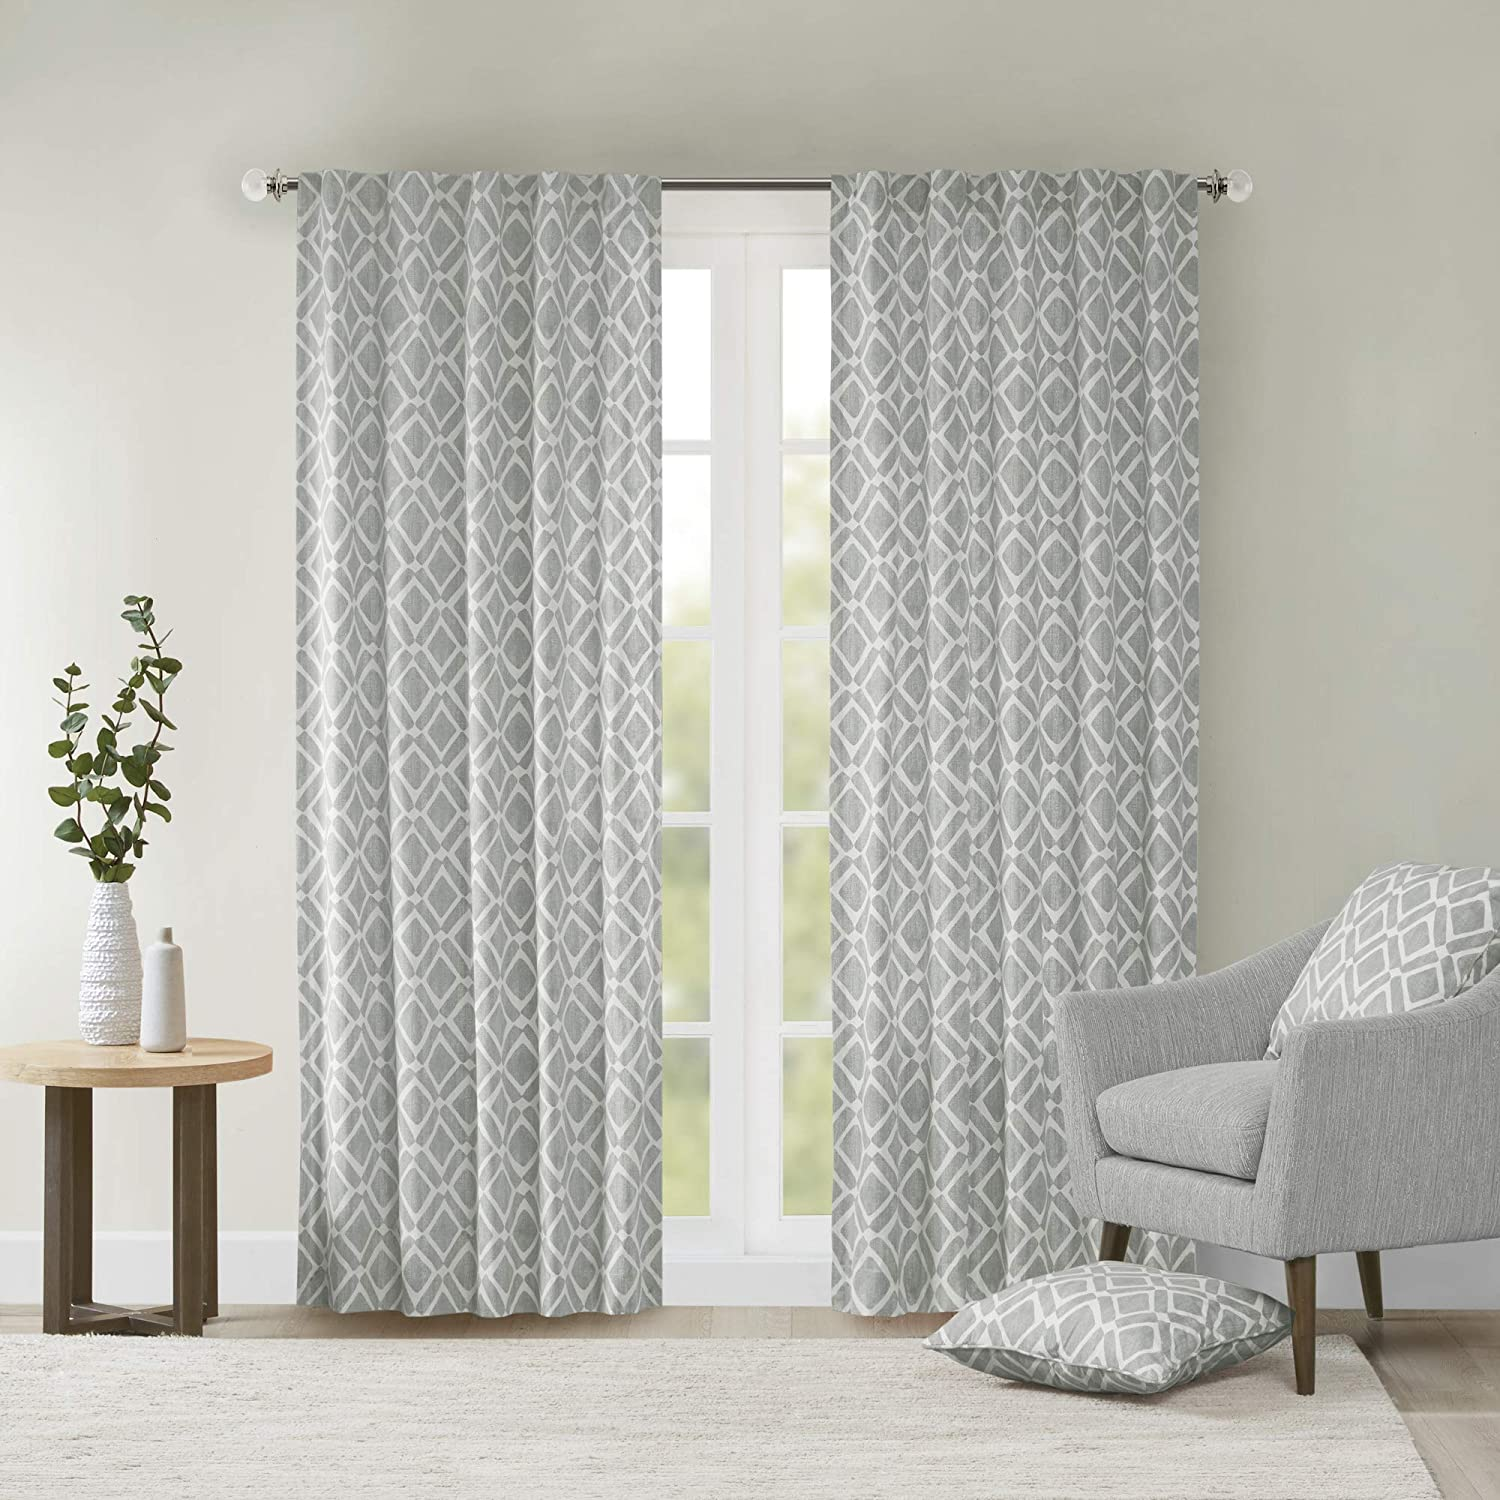 Grey Curtains For Living room , Modern Contemporary Fabric Window Curtains  For Bedroom , Delray Diamond Print-Rod Pocket Modern Window Curtains ,